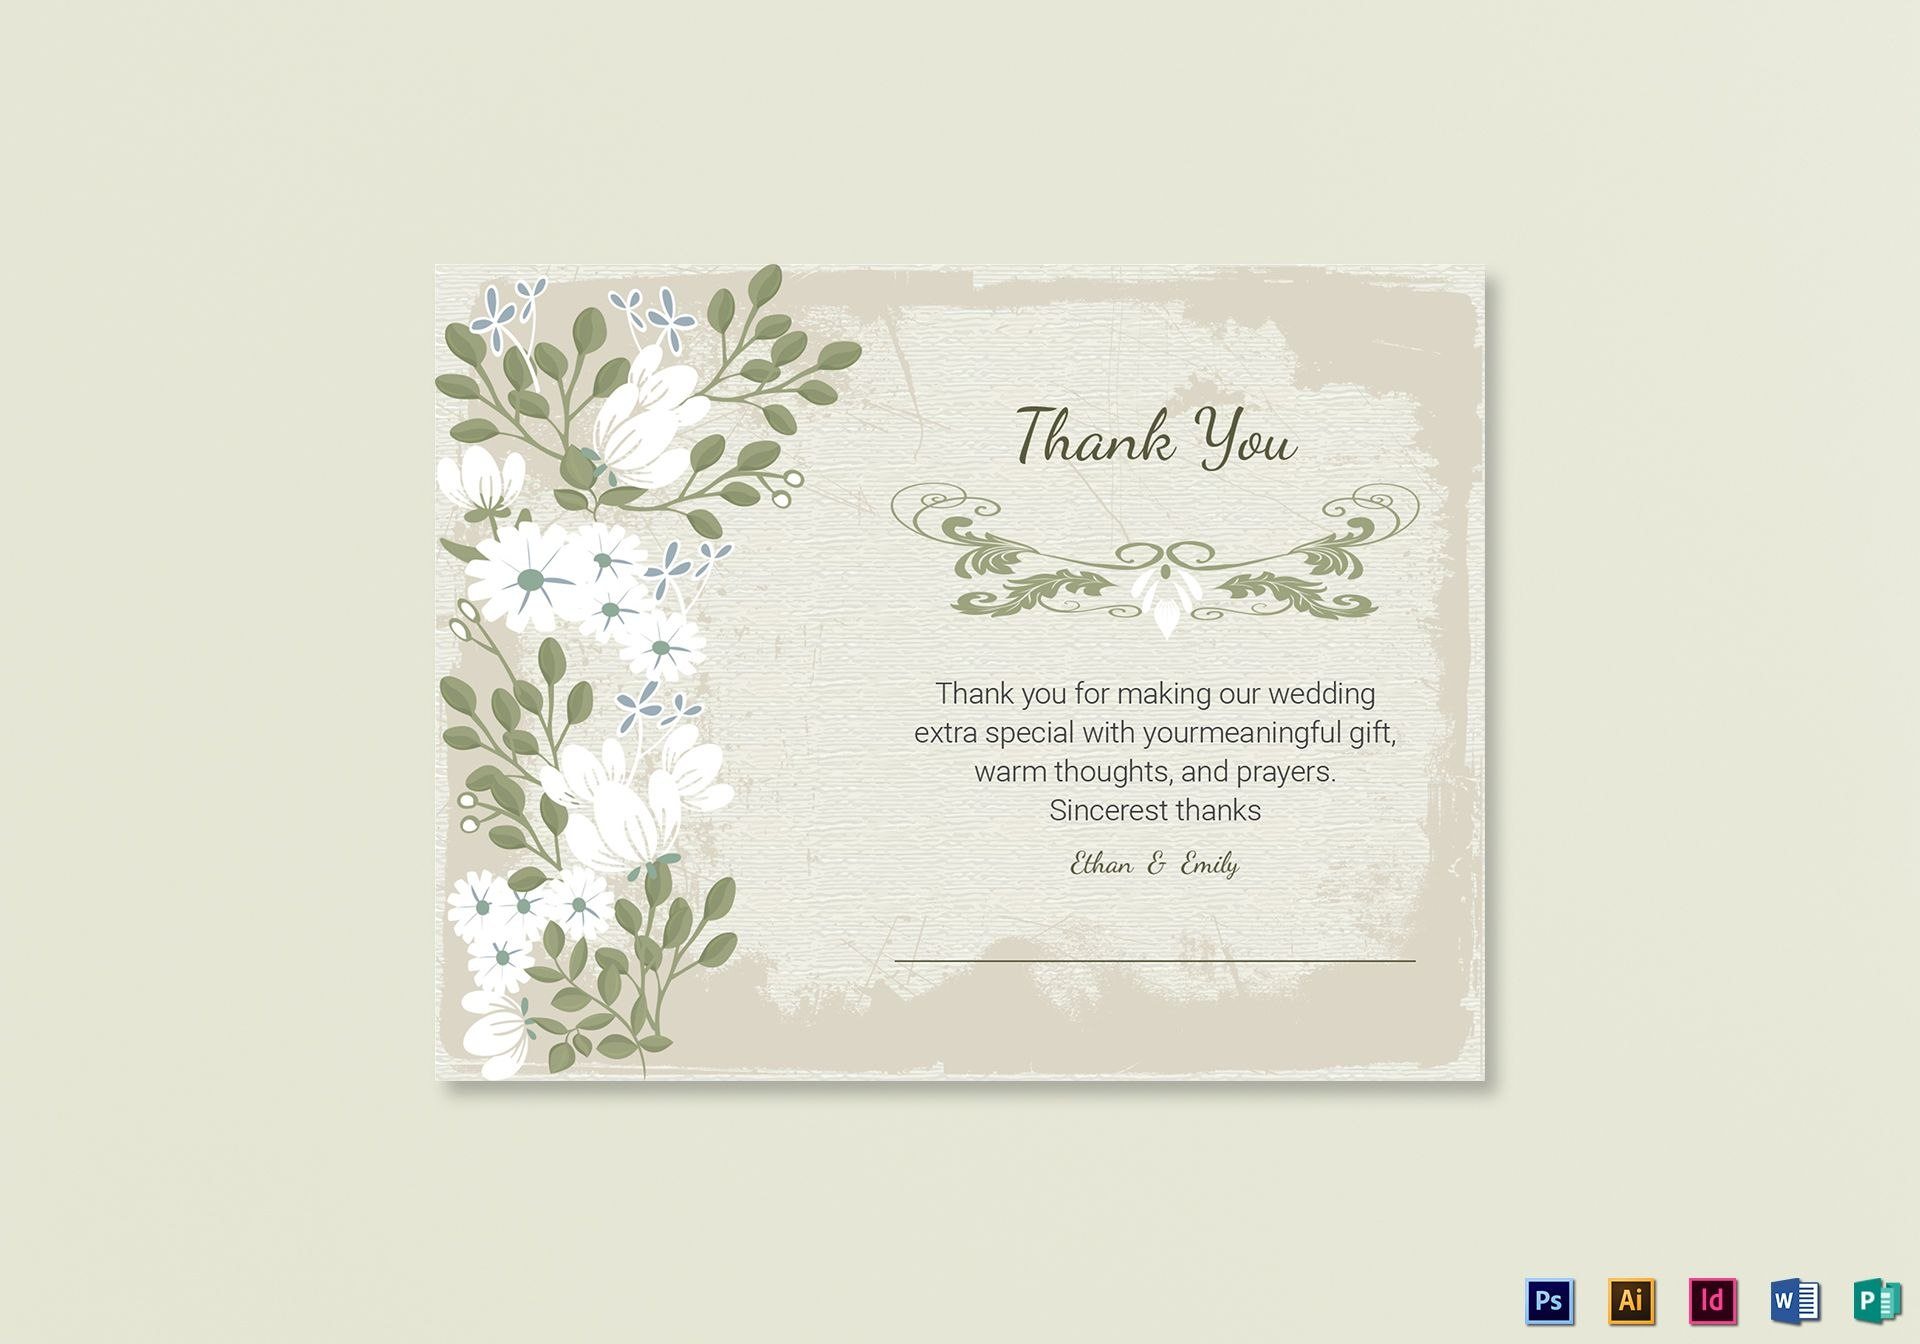 Vintage Thank You Card Template In Psd Word Publisher Illustrator Regarding Thank You Card Template Word